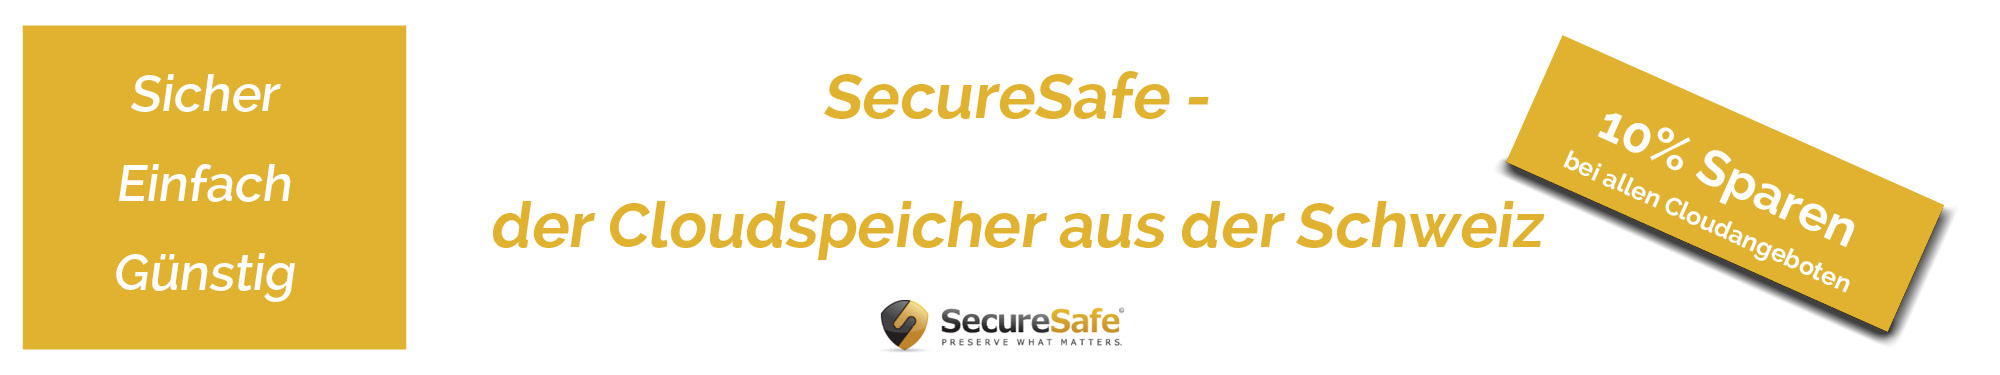 SecureSafe - sichererer Cloudspeicher